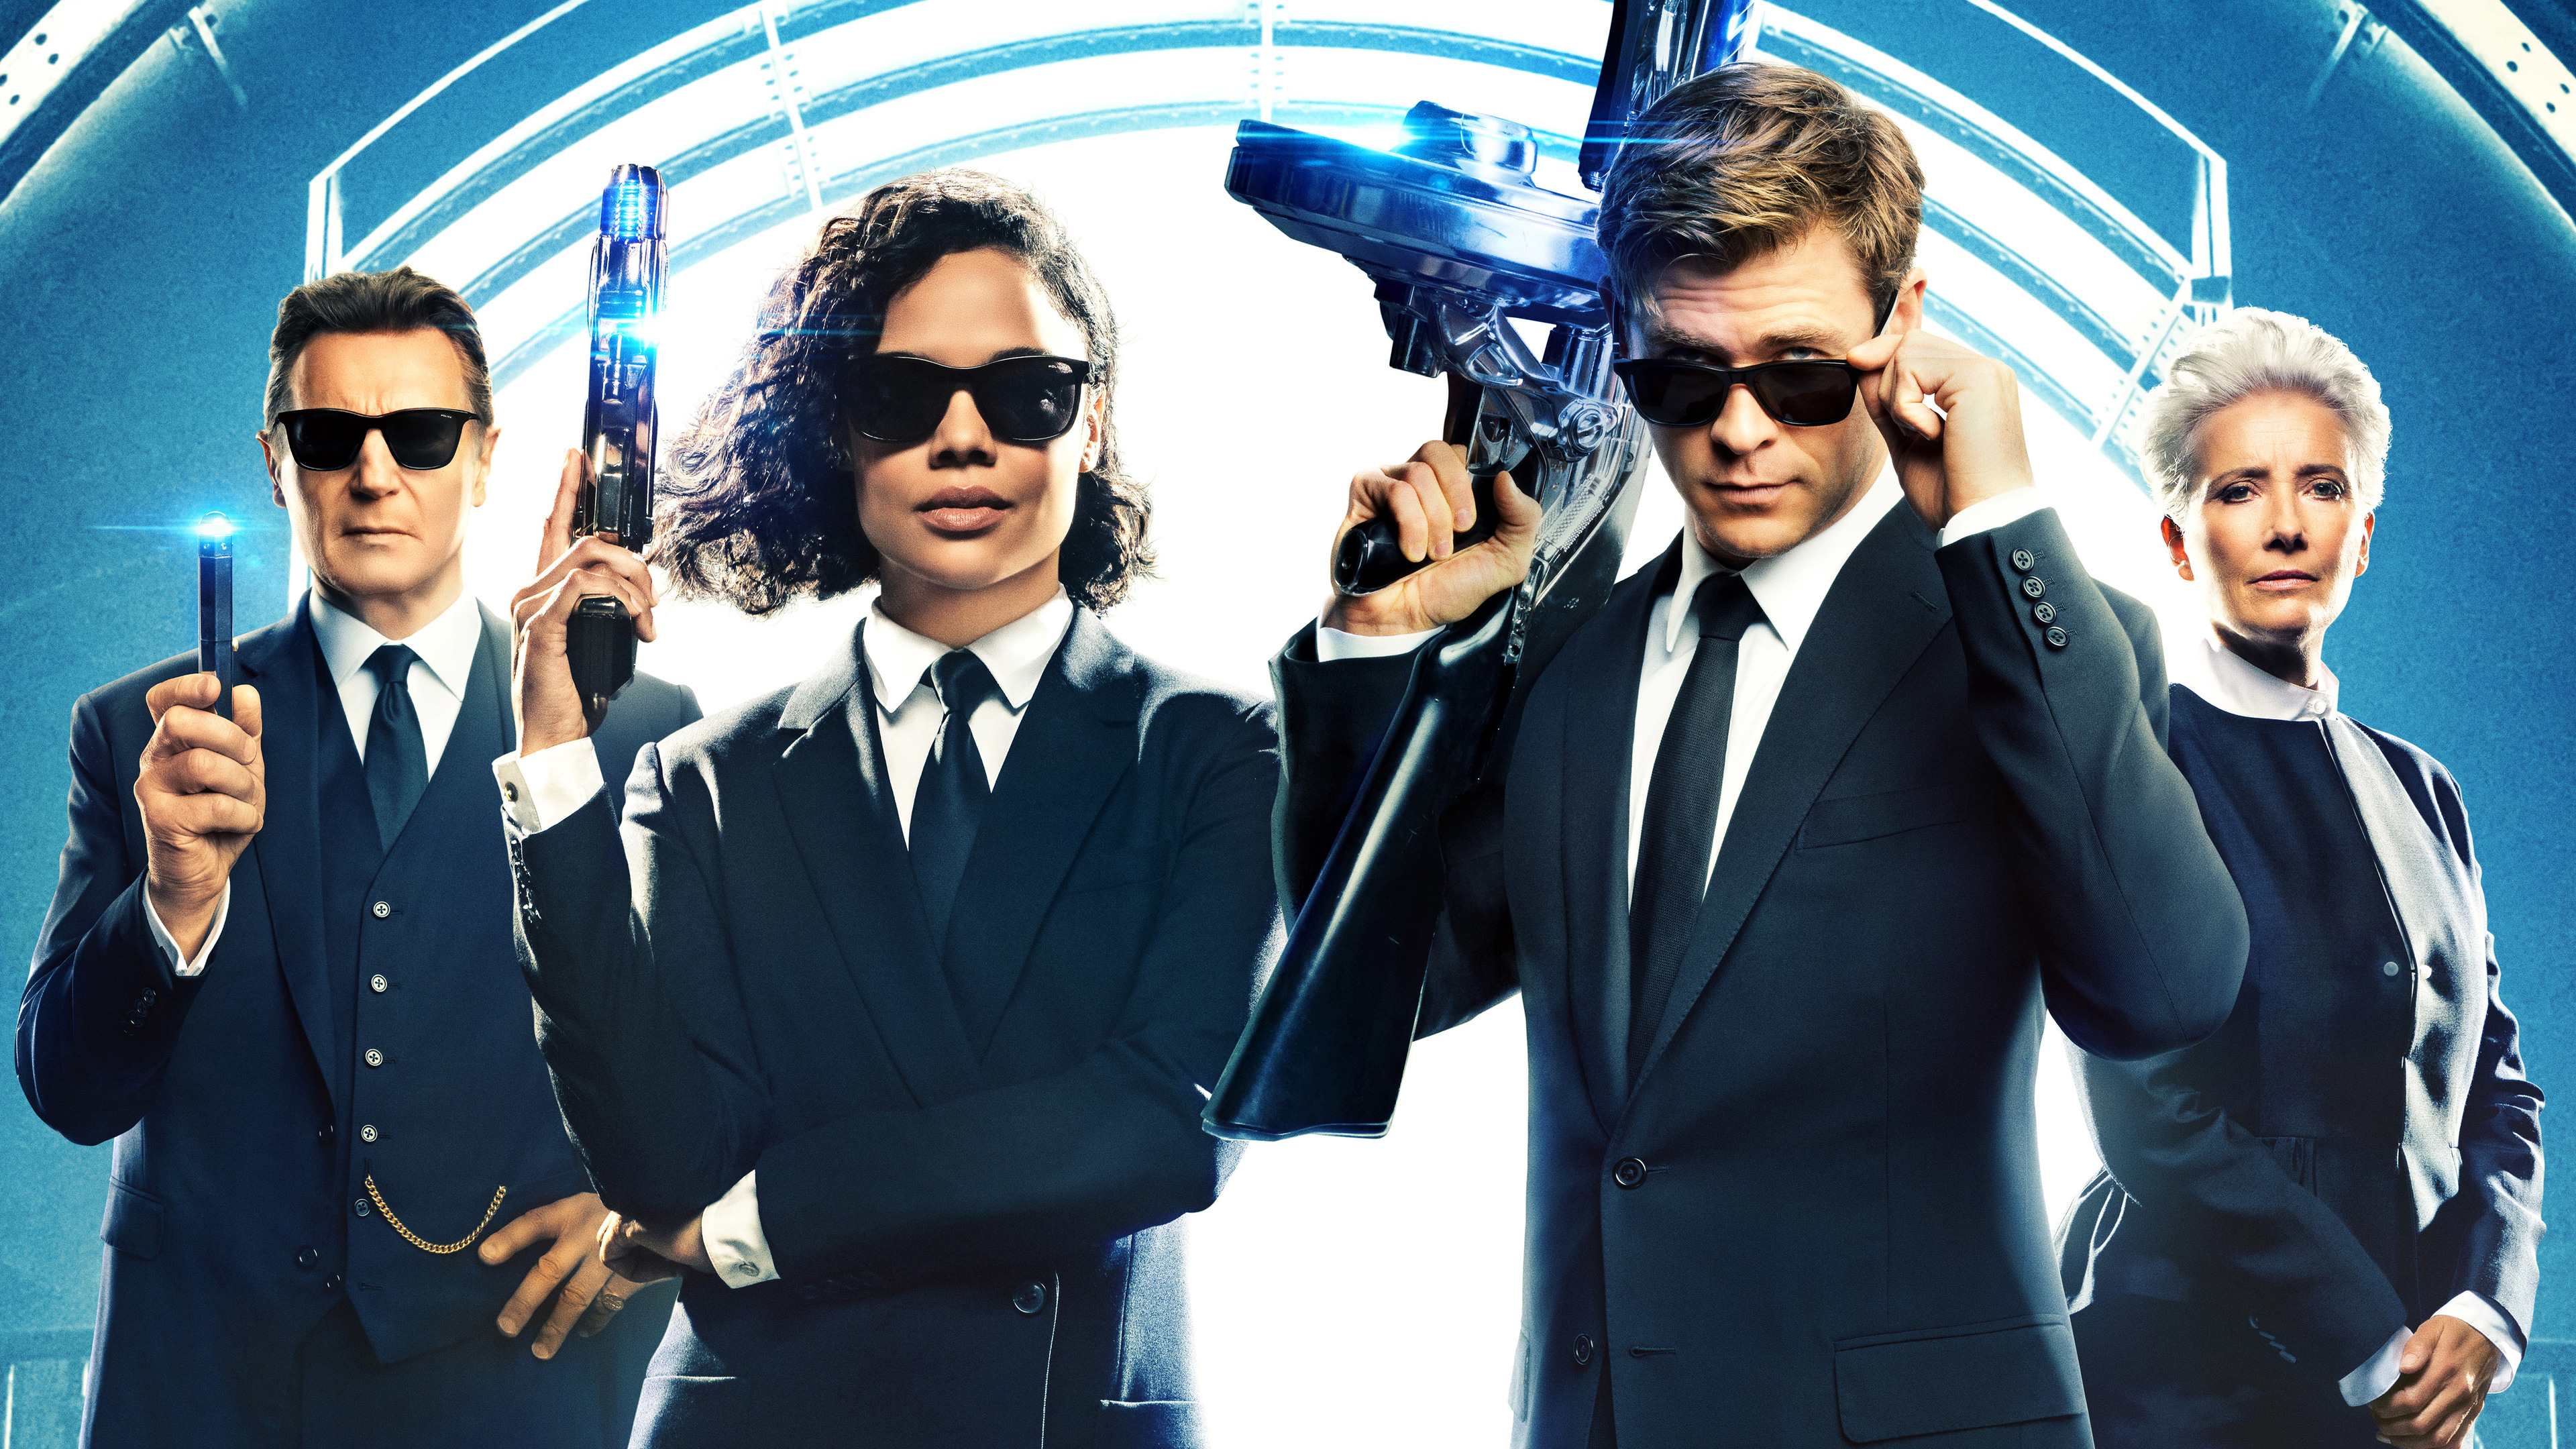 2019 men in black international 1562107009 - 2019 Men In Black International - movies wallpapers, mib international wallpapers, men in black wallpapers, men in black international wallpapers, hd-wallpapers, chris hemsworth wallpapers, 5k wallpapers, 4k-wallpapers, 2019 movies wallpapers